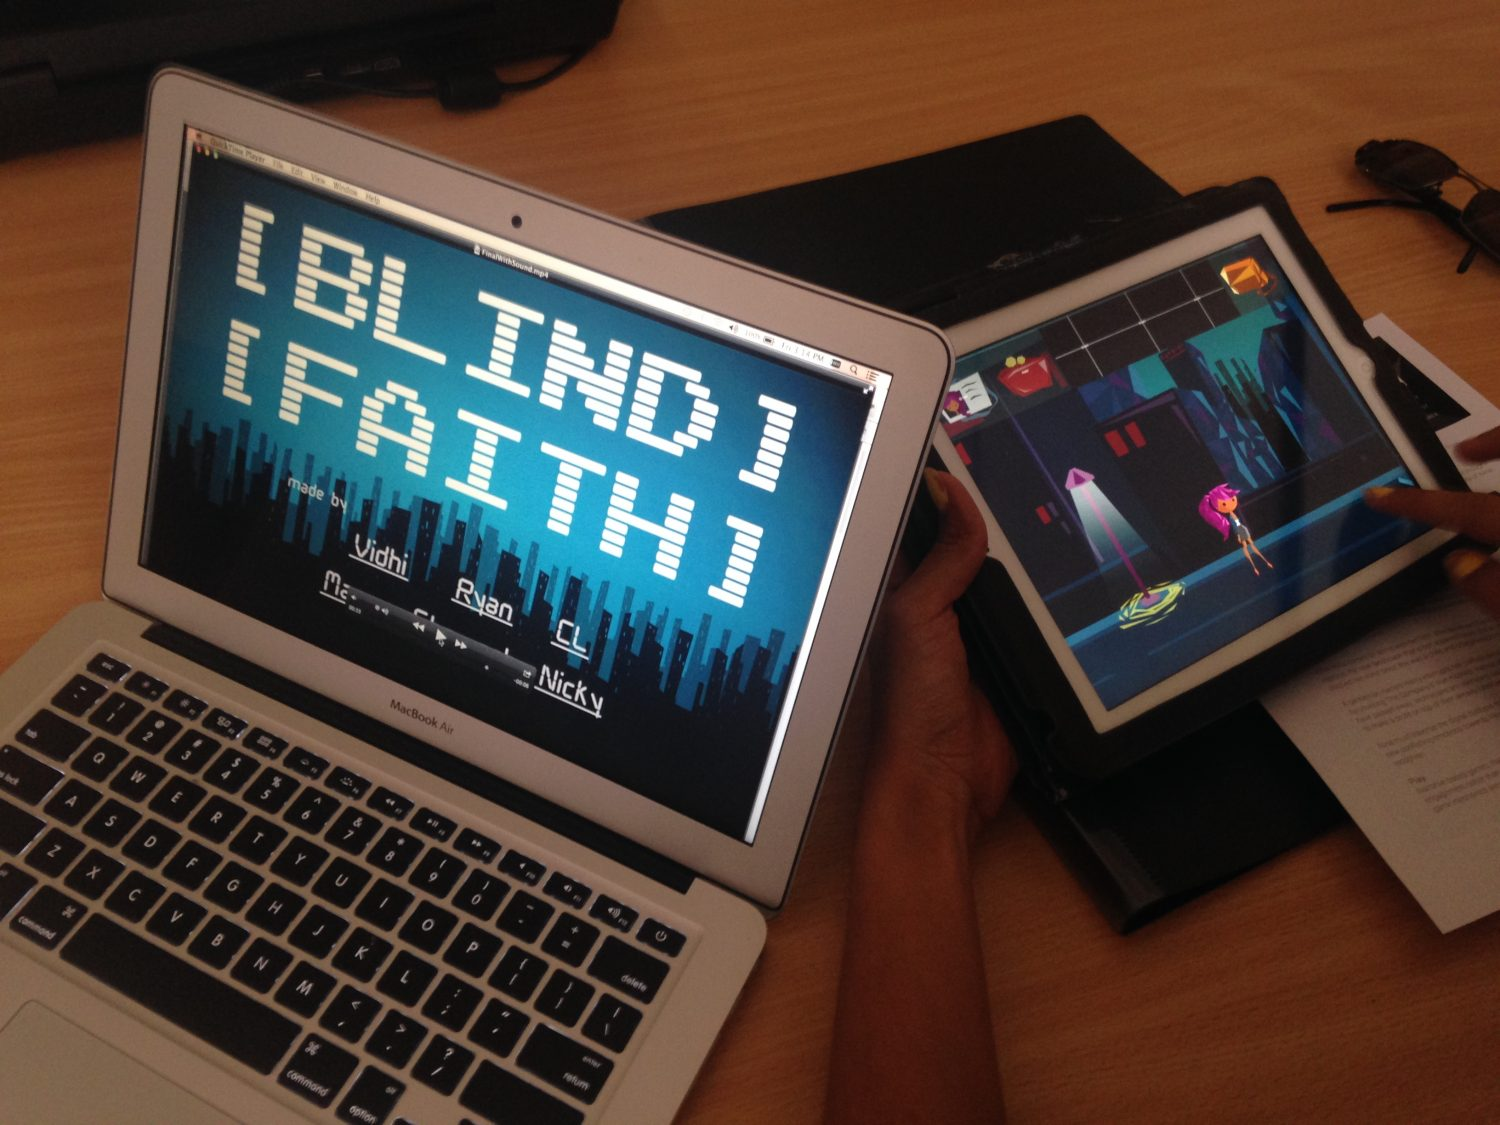 Blind Faith video on laptop and Blind Faith game on iPad